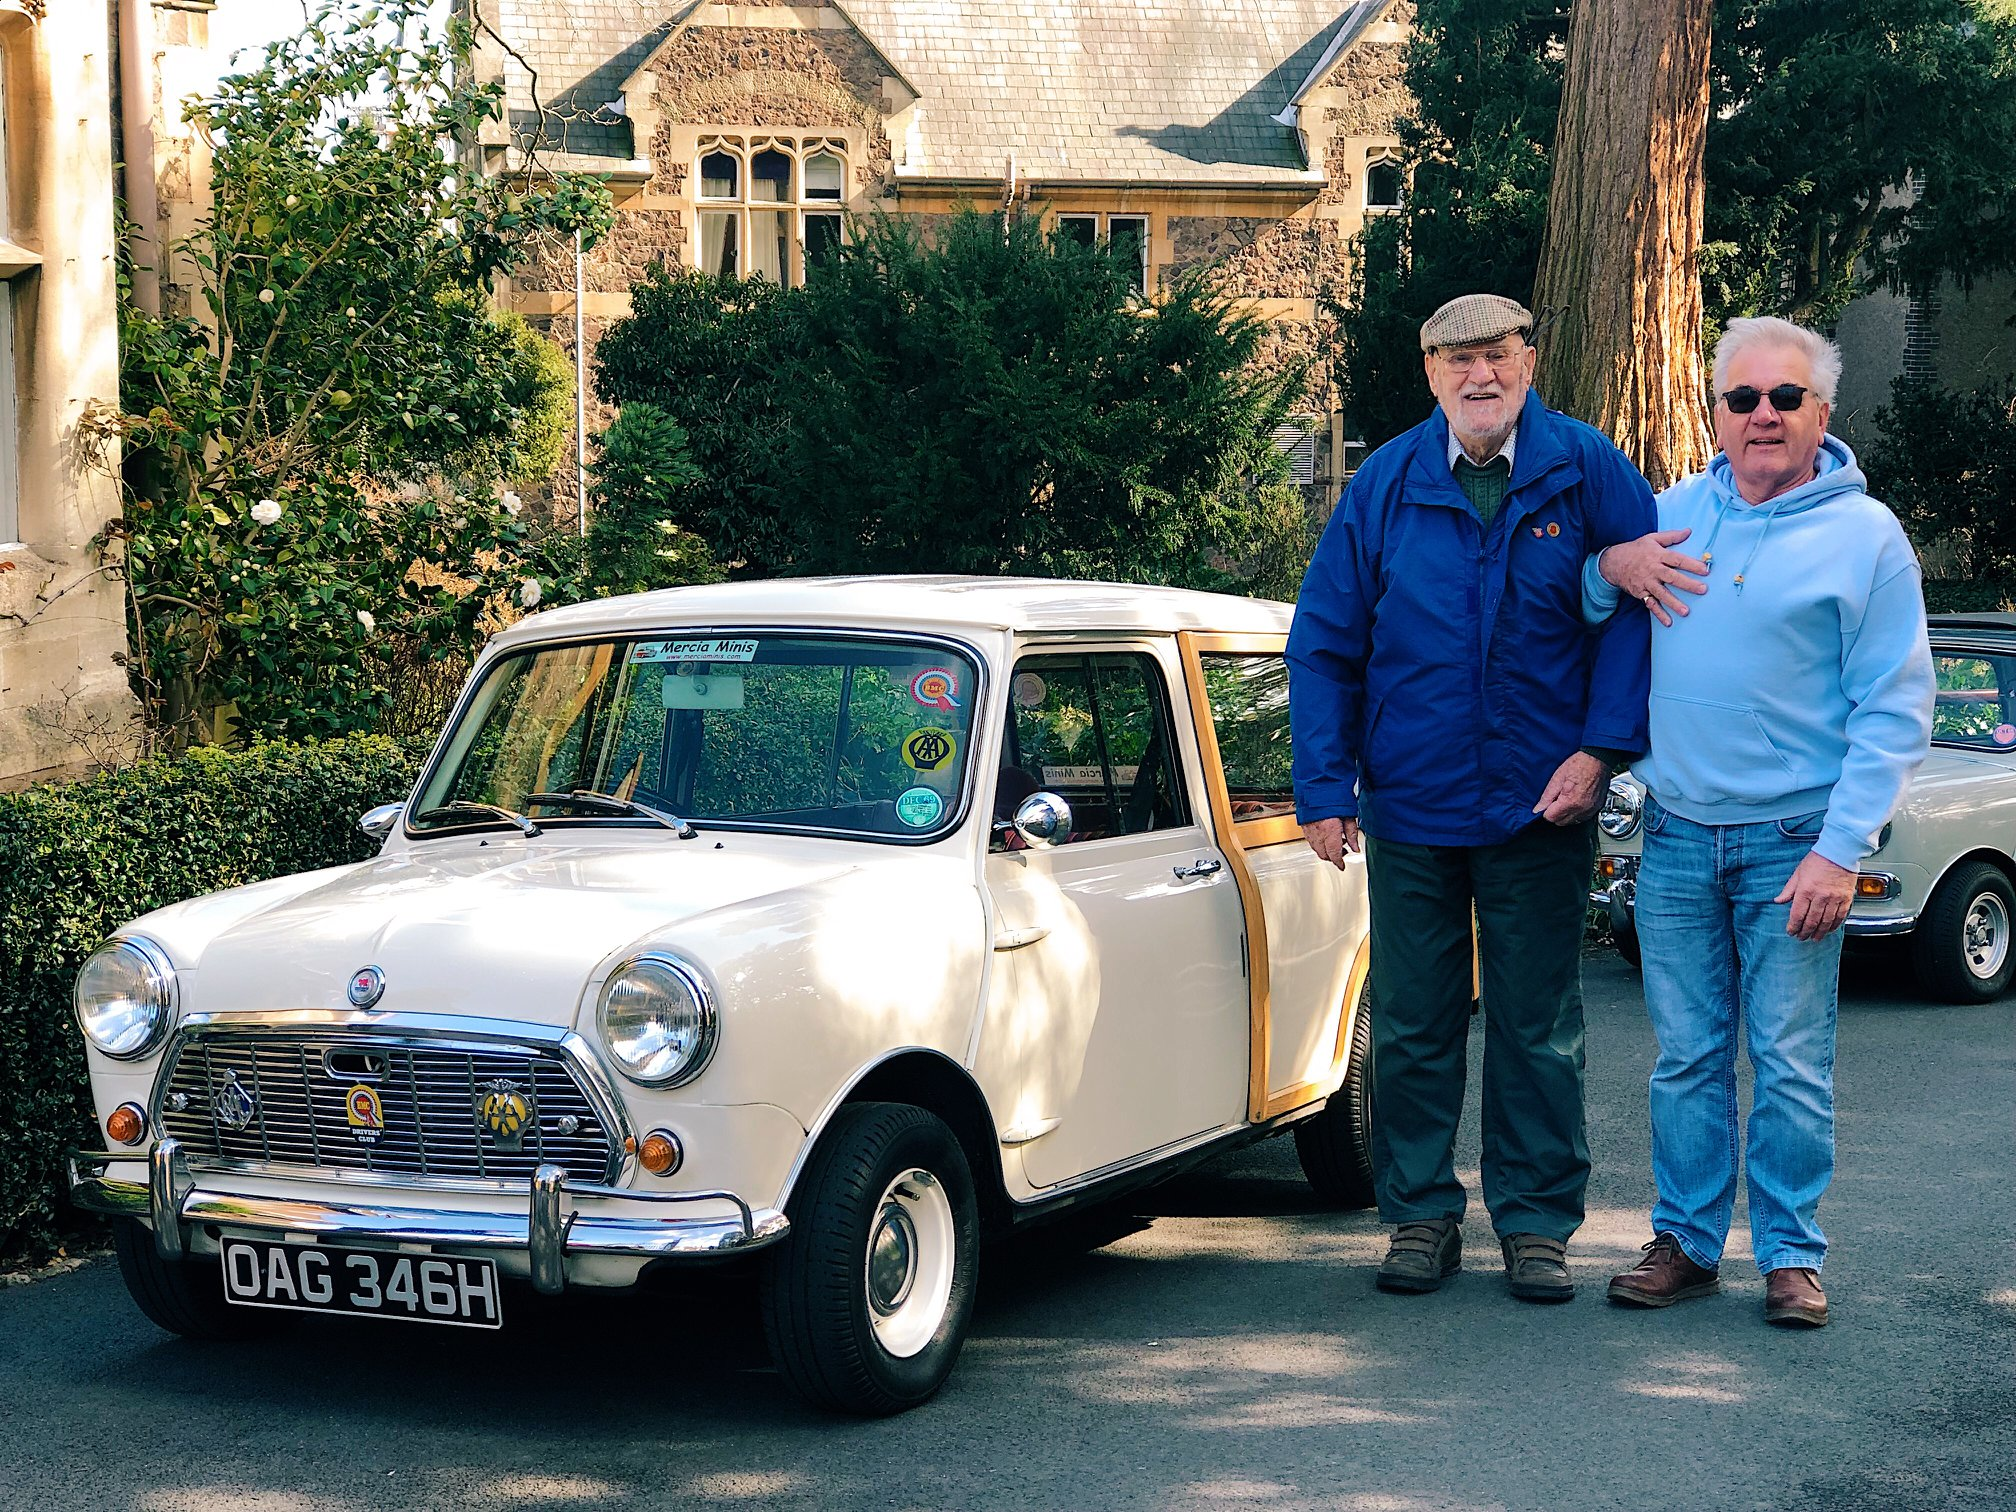 Worcestershire motoring club members with their car